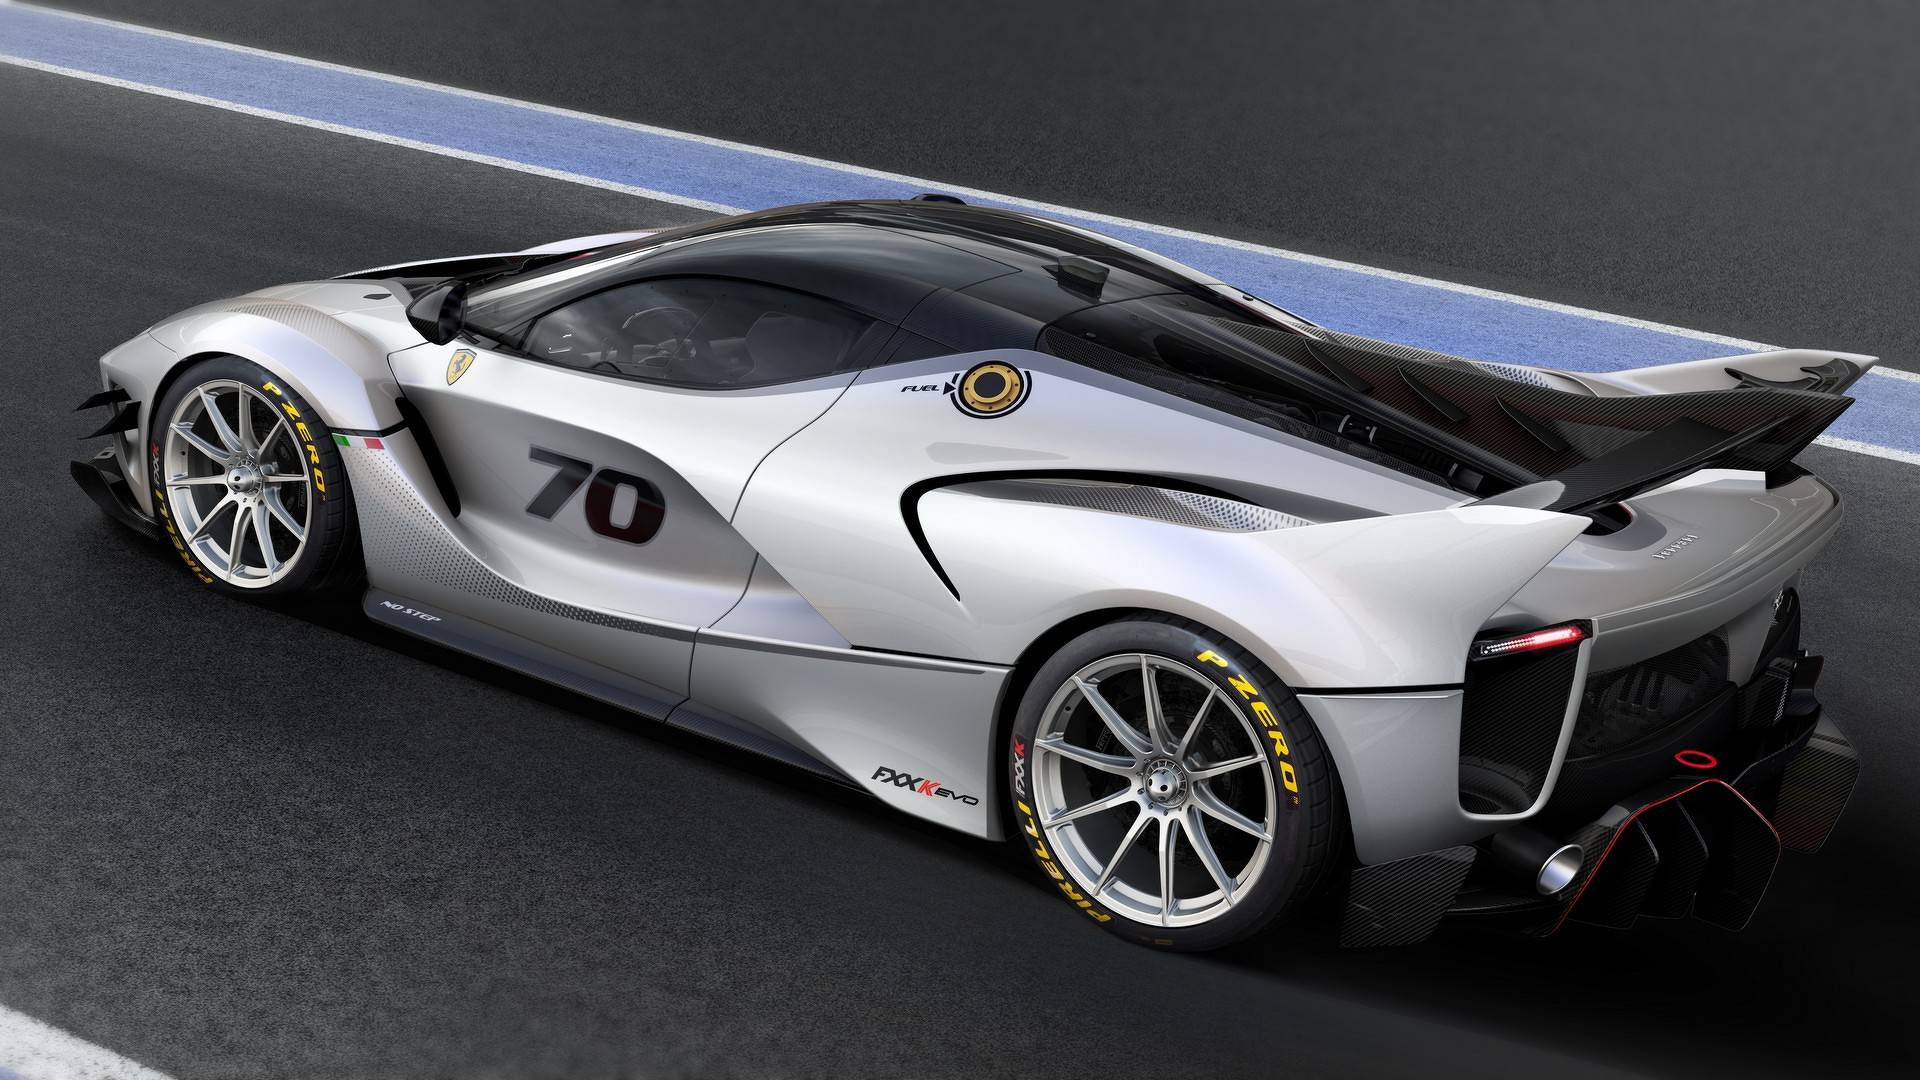 ferrari fxx k evo launched available as upgrade package and in turnkey flavor autoevolution. Black Bedroom Furniture Sets. Home Design Ideas